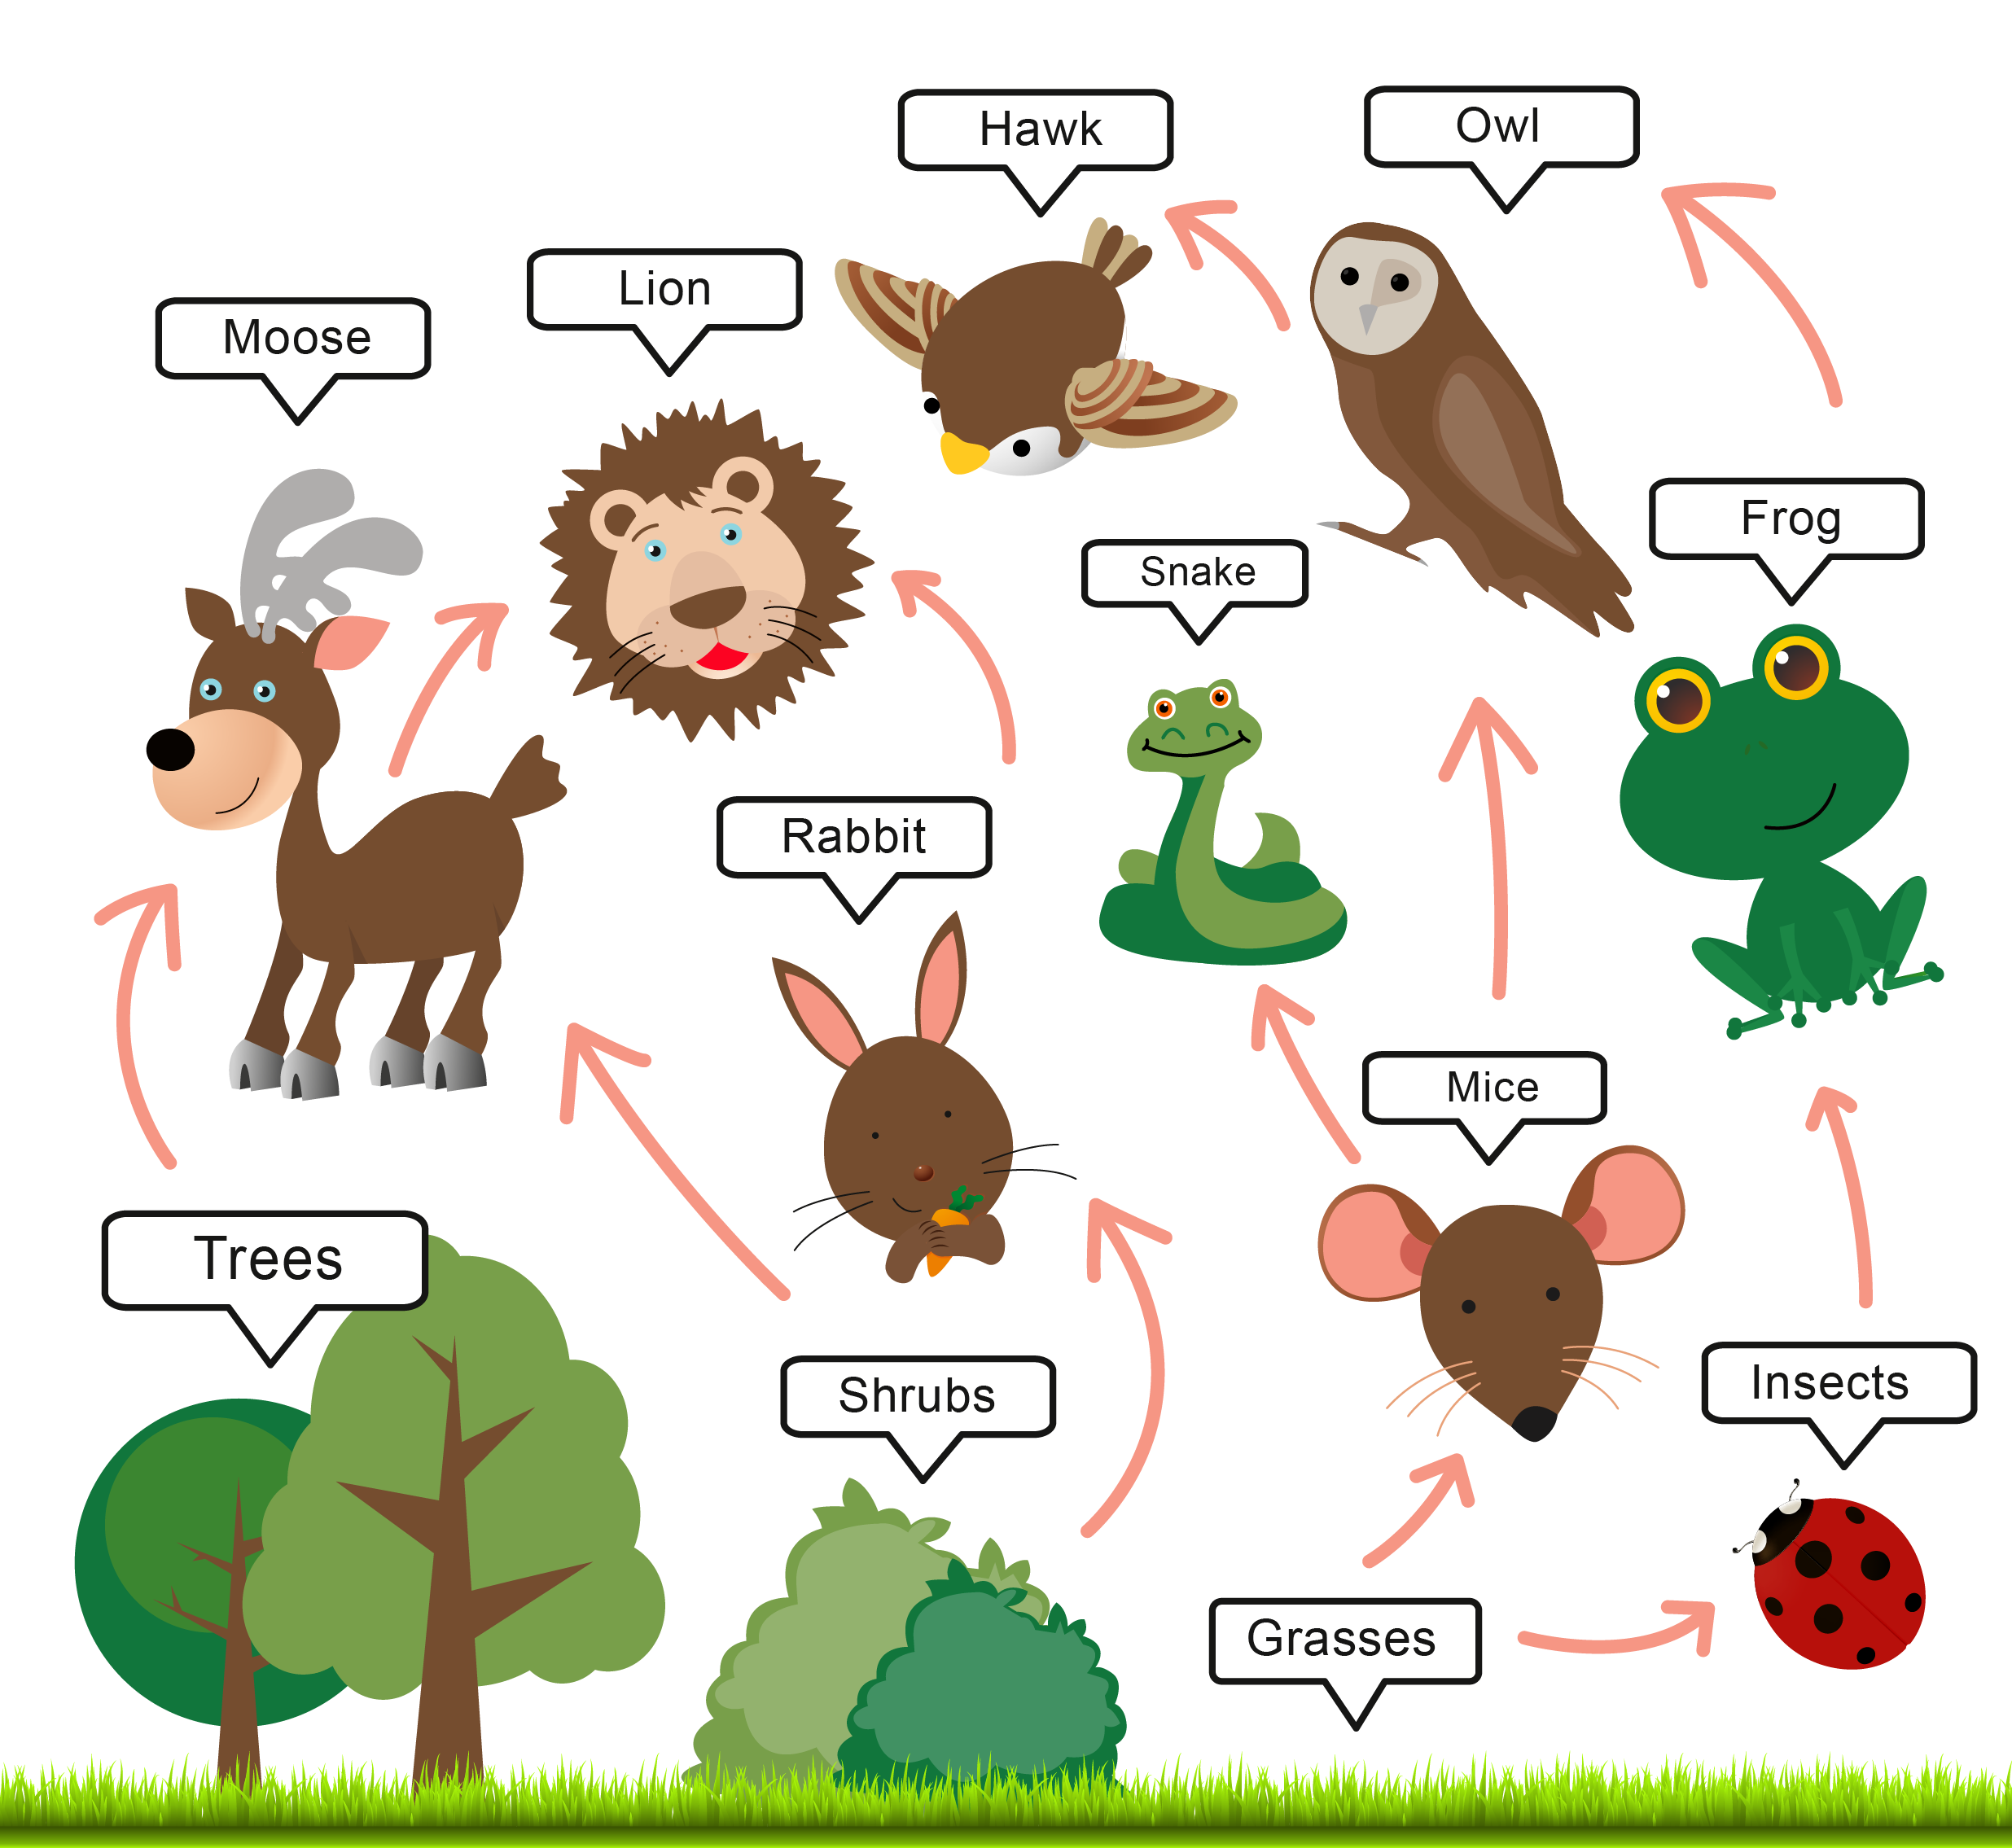 Owl Food Chain submited images.